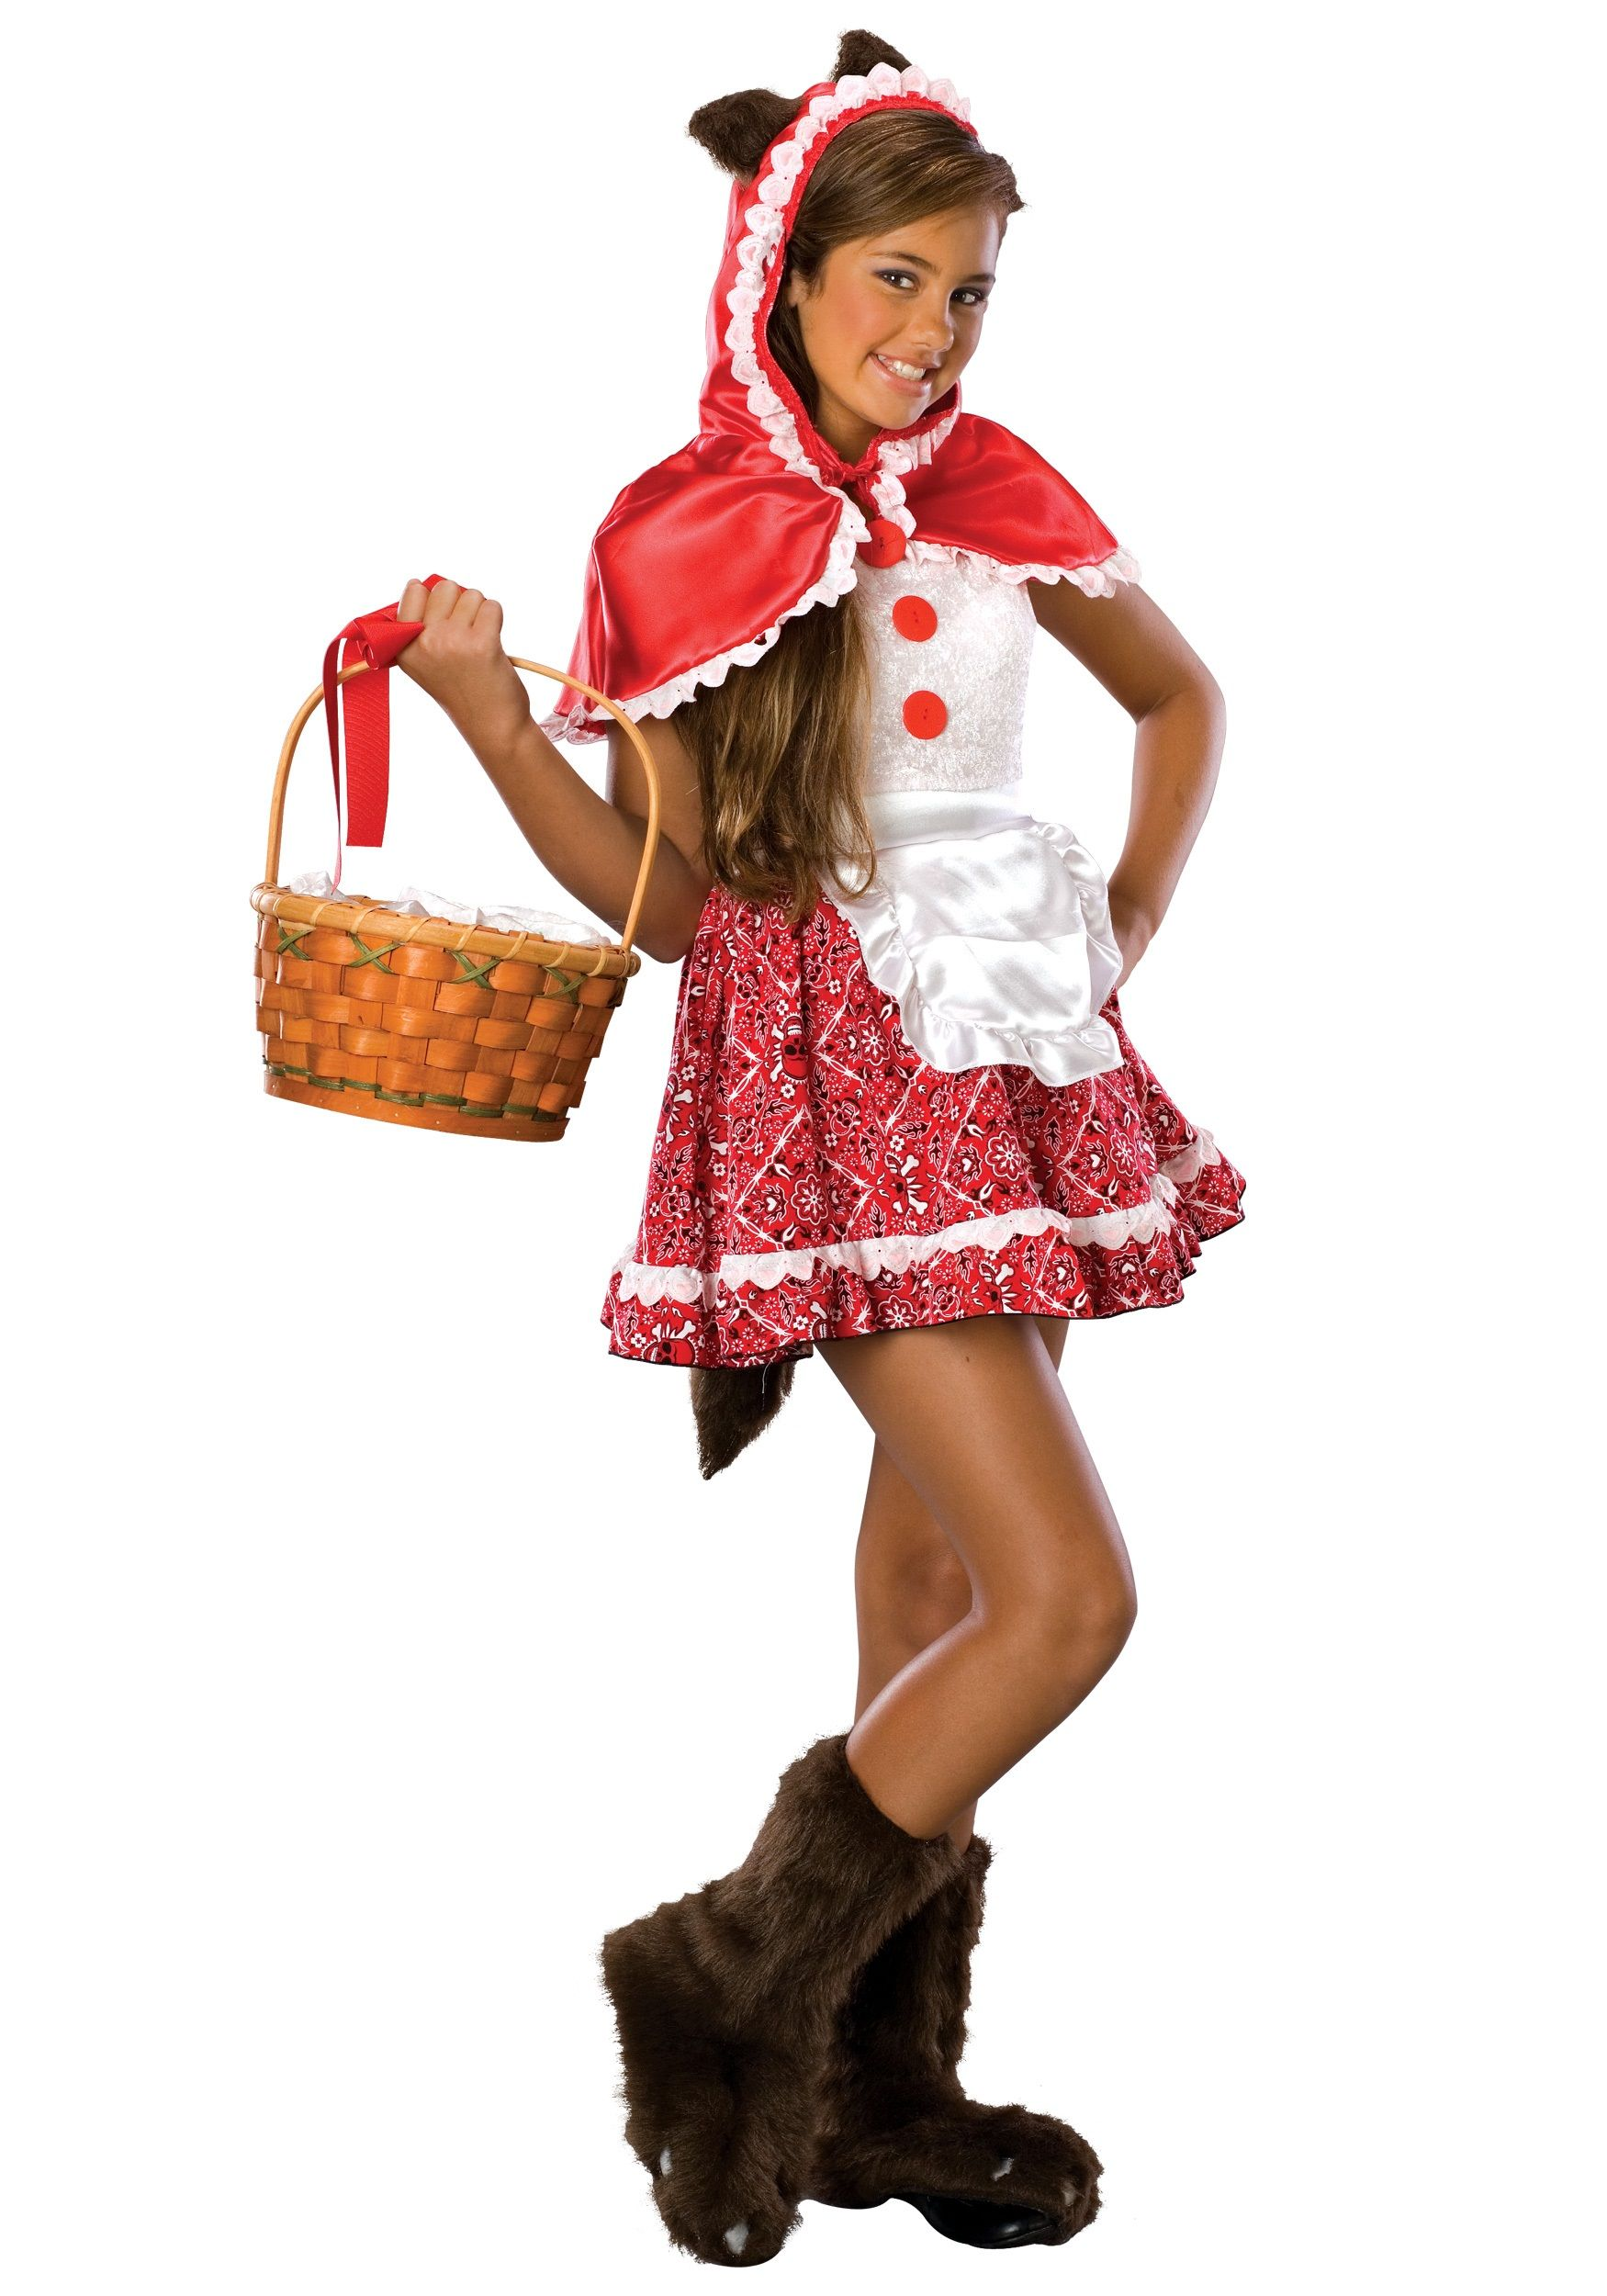 Tween Red Riding Hood Costume Red riding hood costume